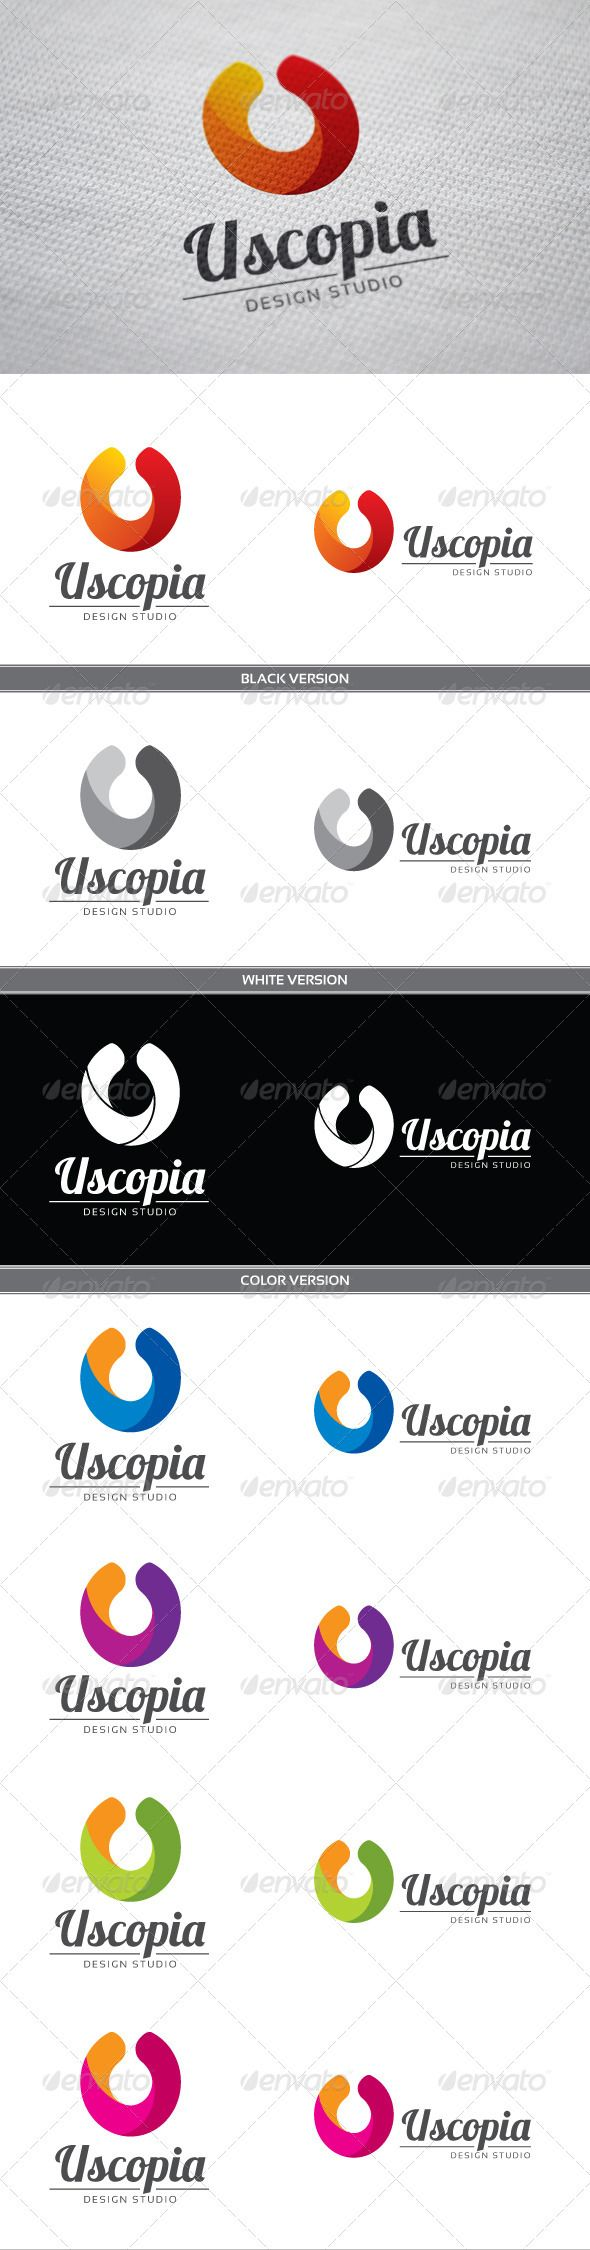 Uscopia U Letter Logo #GraphicRiver Uscopia Logo symbolizes the letter U. Logo symbolizes flexibility, smoothness, dynamics and cycles. You can easy change color for logo. Feature Ai, Eps, PSD , Transparent PNG Help file Font used: Lobster – .dafont /lobster.font Sansation – .dafont /sansation.font Unique Logos Badges Created: 3February13 GraphicsFilesIncluded: PhotoshopPSD #TransparentPNG #VectorEPS #AIIllustrator Layered: Yes MinimumAdobeCSVersion: CS2 Resolution: Resizable Tags: arc…